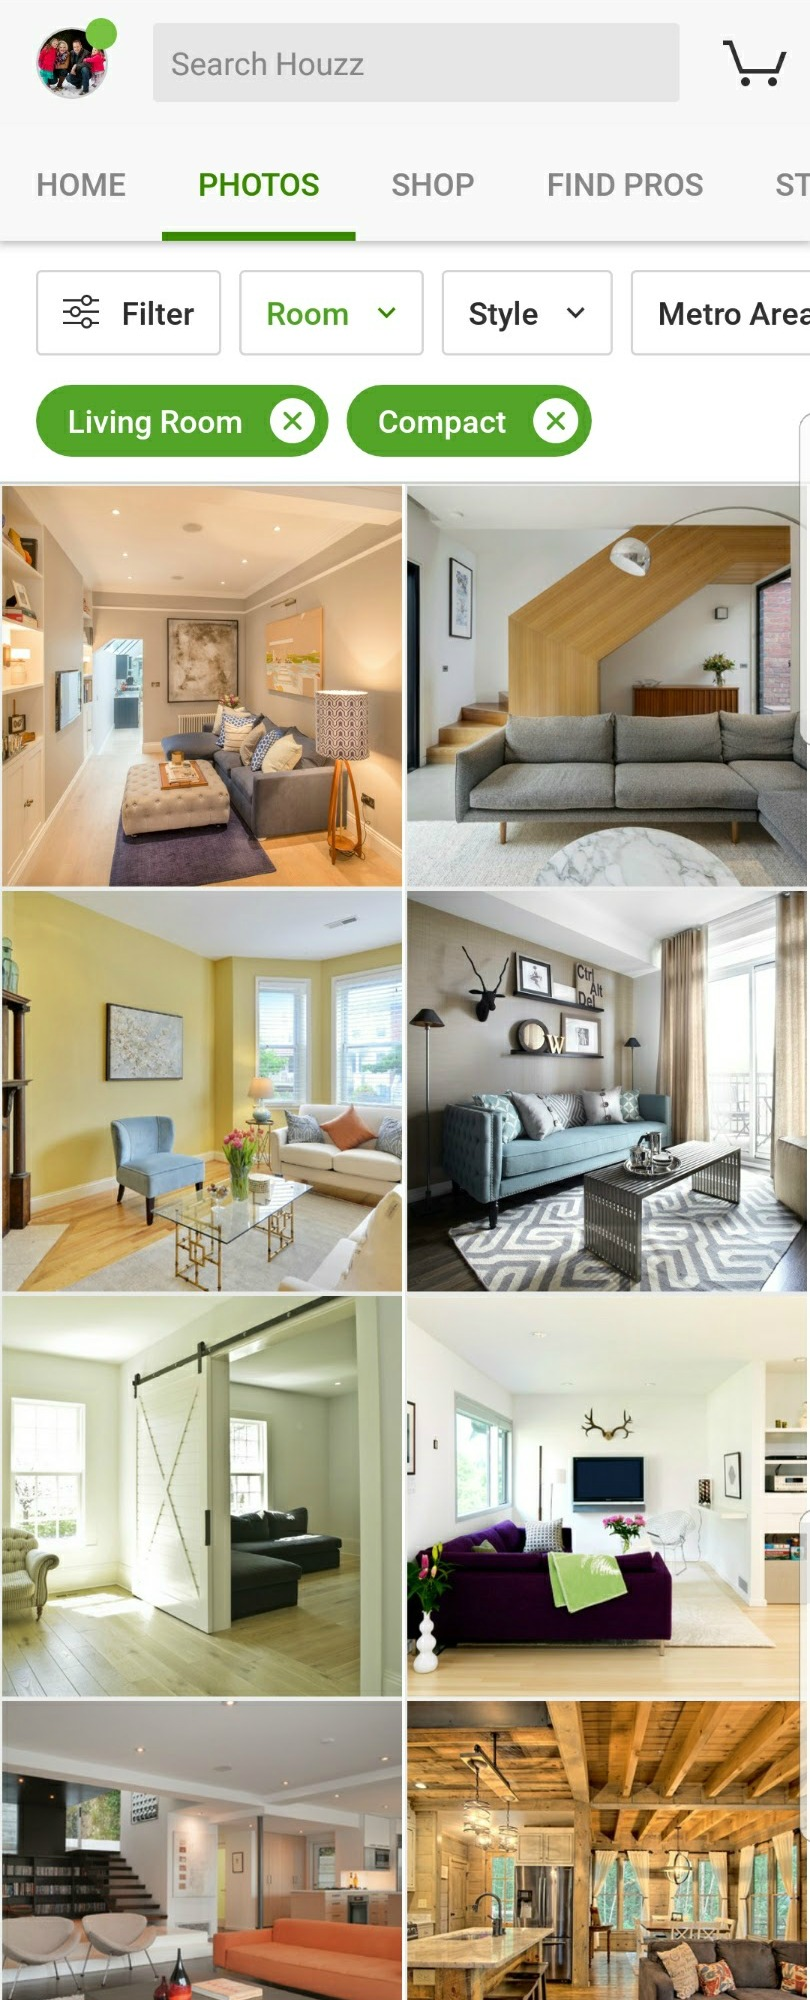 Houzz Home Inspiration Screenshot 02